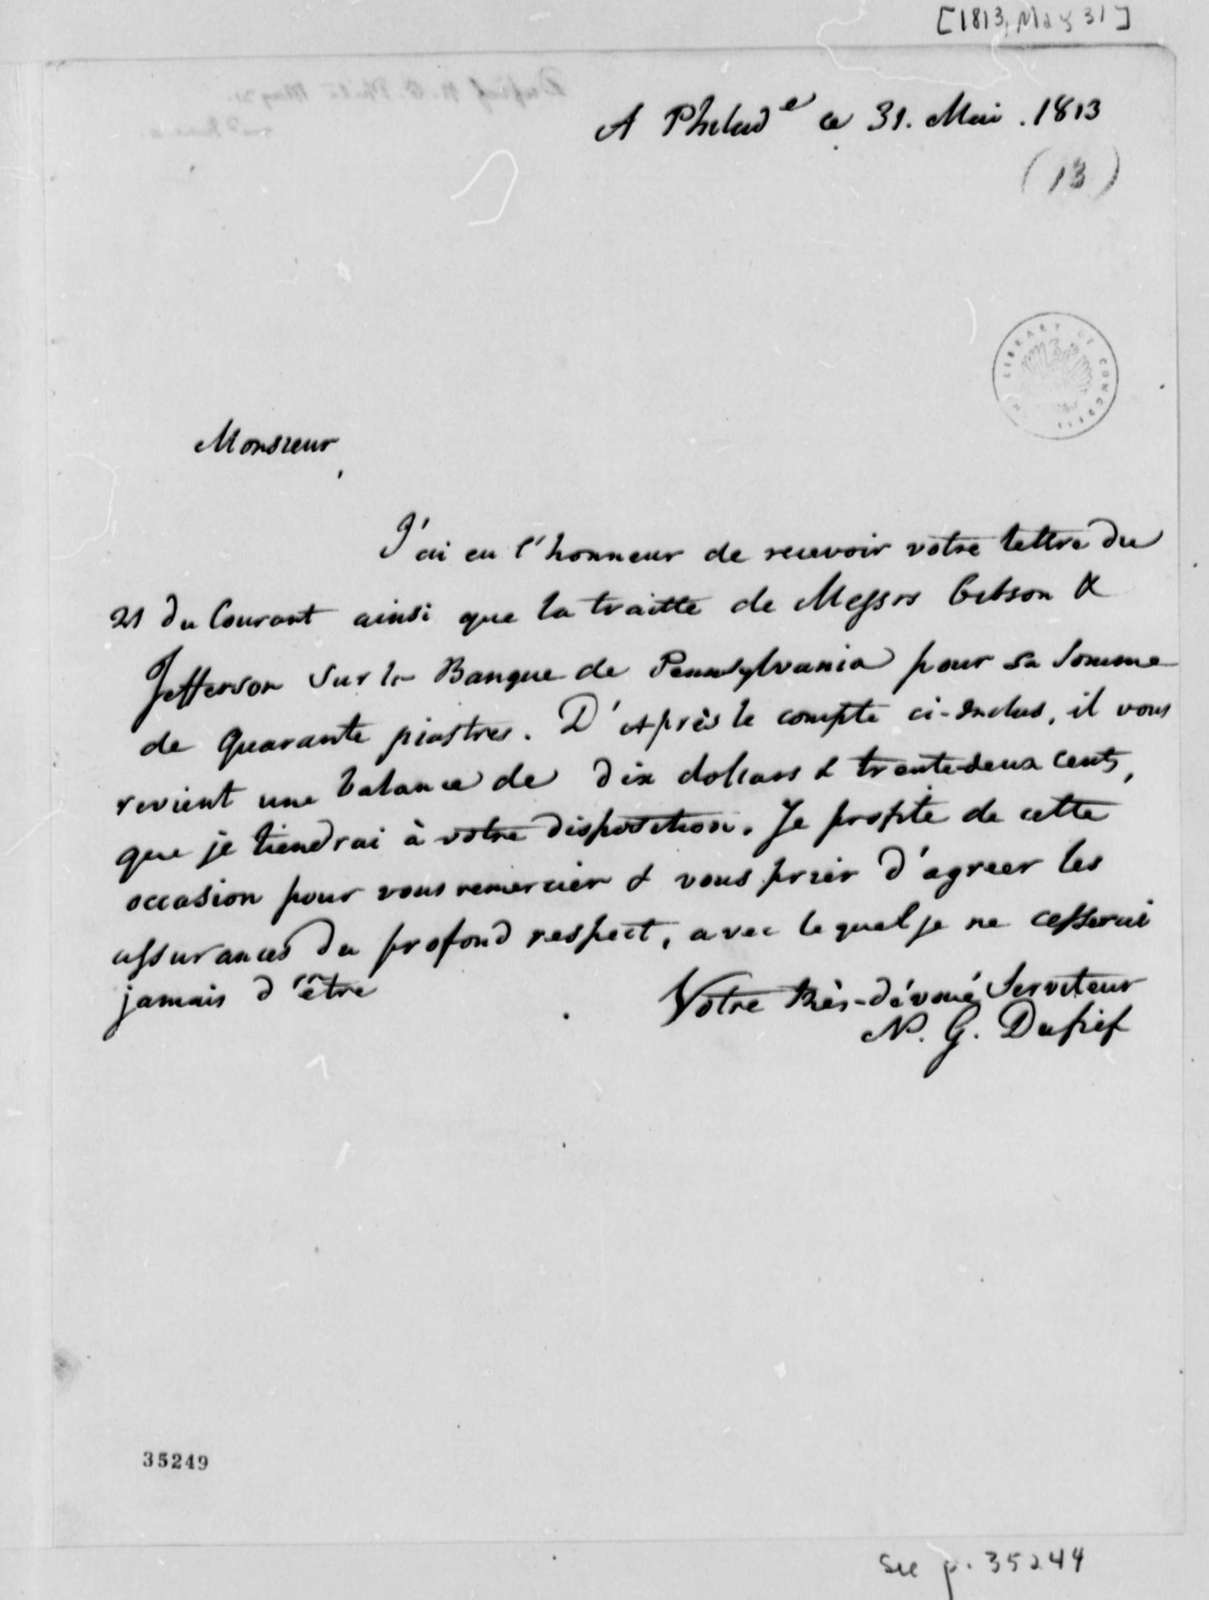 Nicholas Gouin Dufief to Thomas Jefferson, May 31, 1813, in French